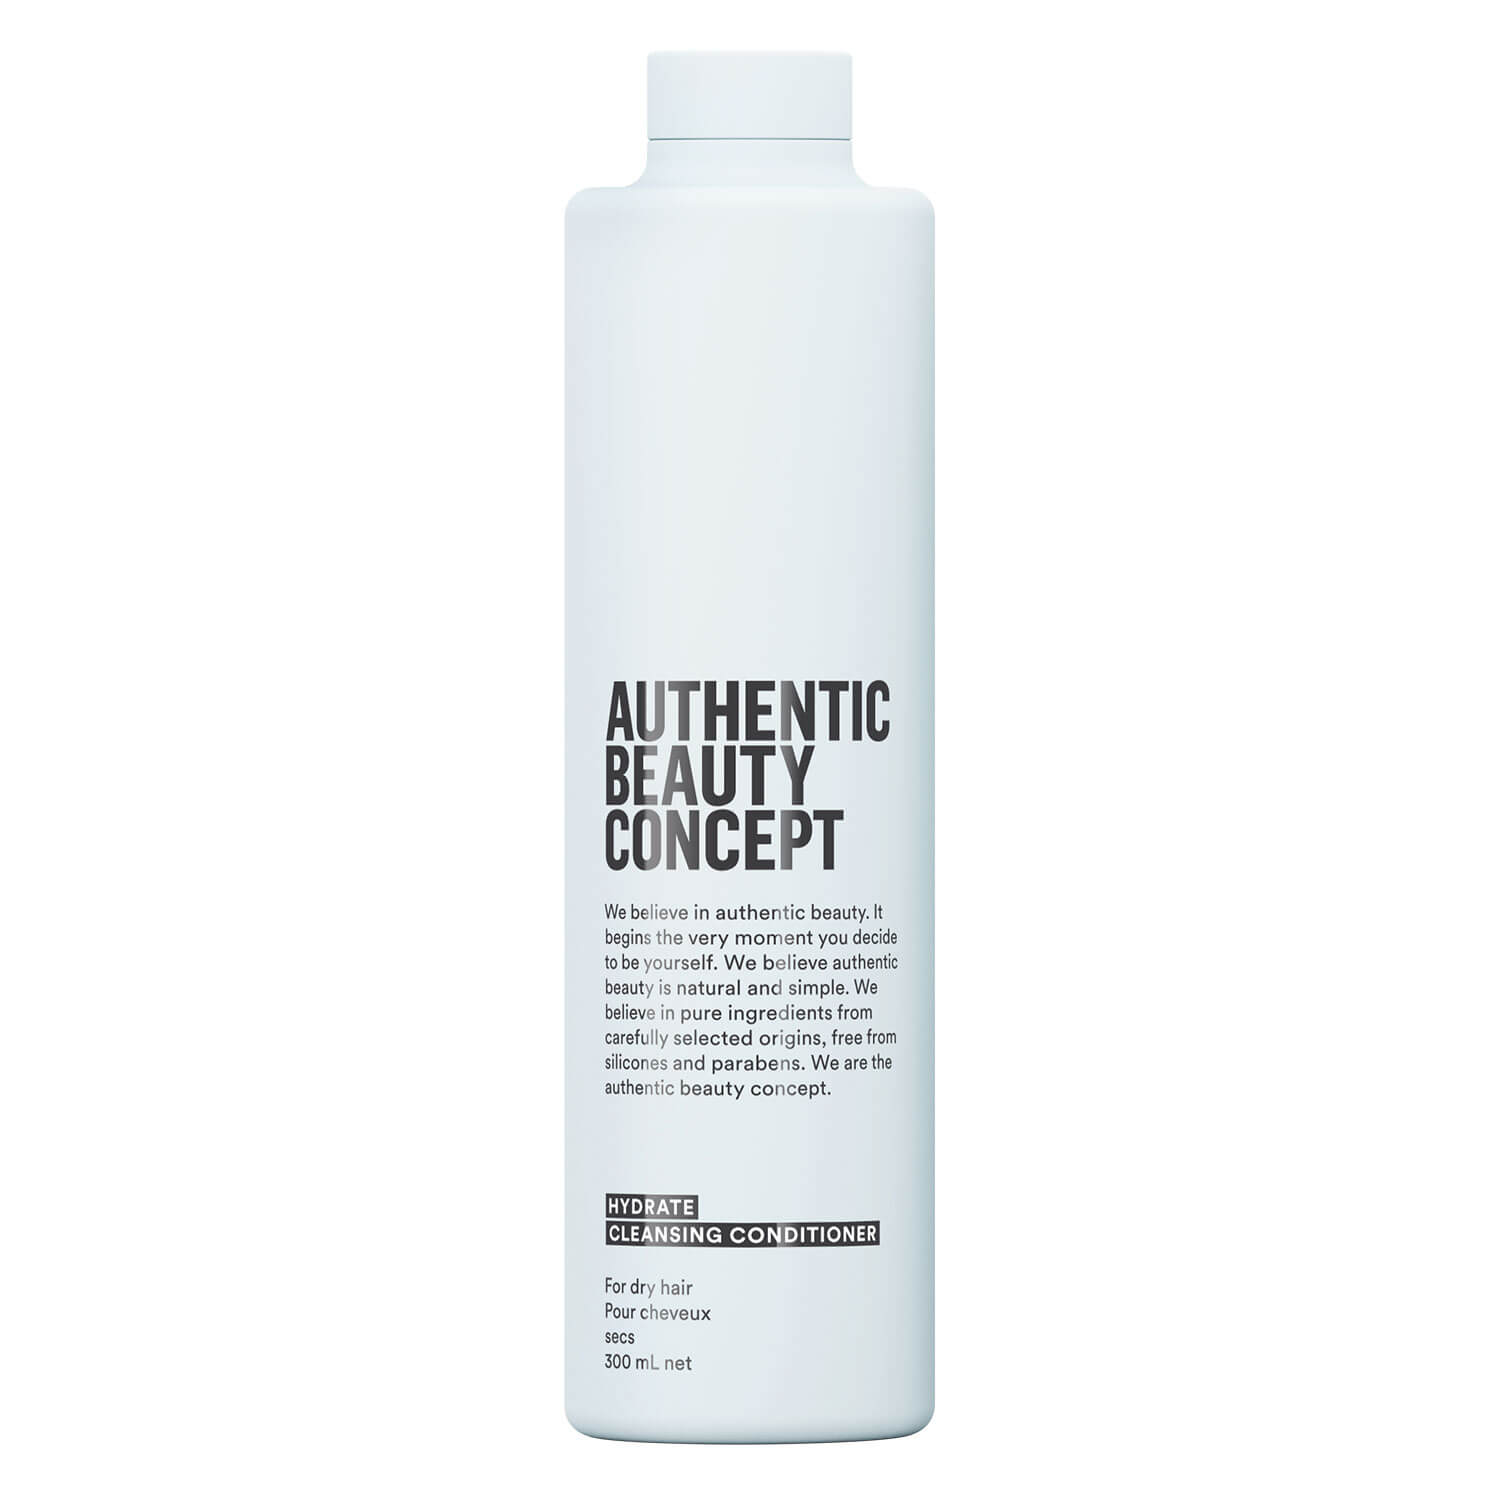 Authentic Beauty Concept - Hydrate Cleansing Conditioner - 300ml